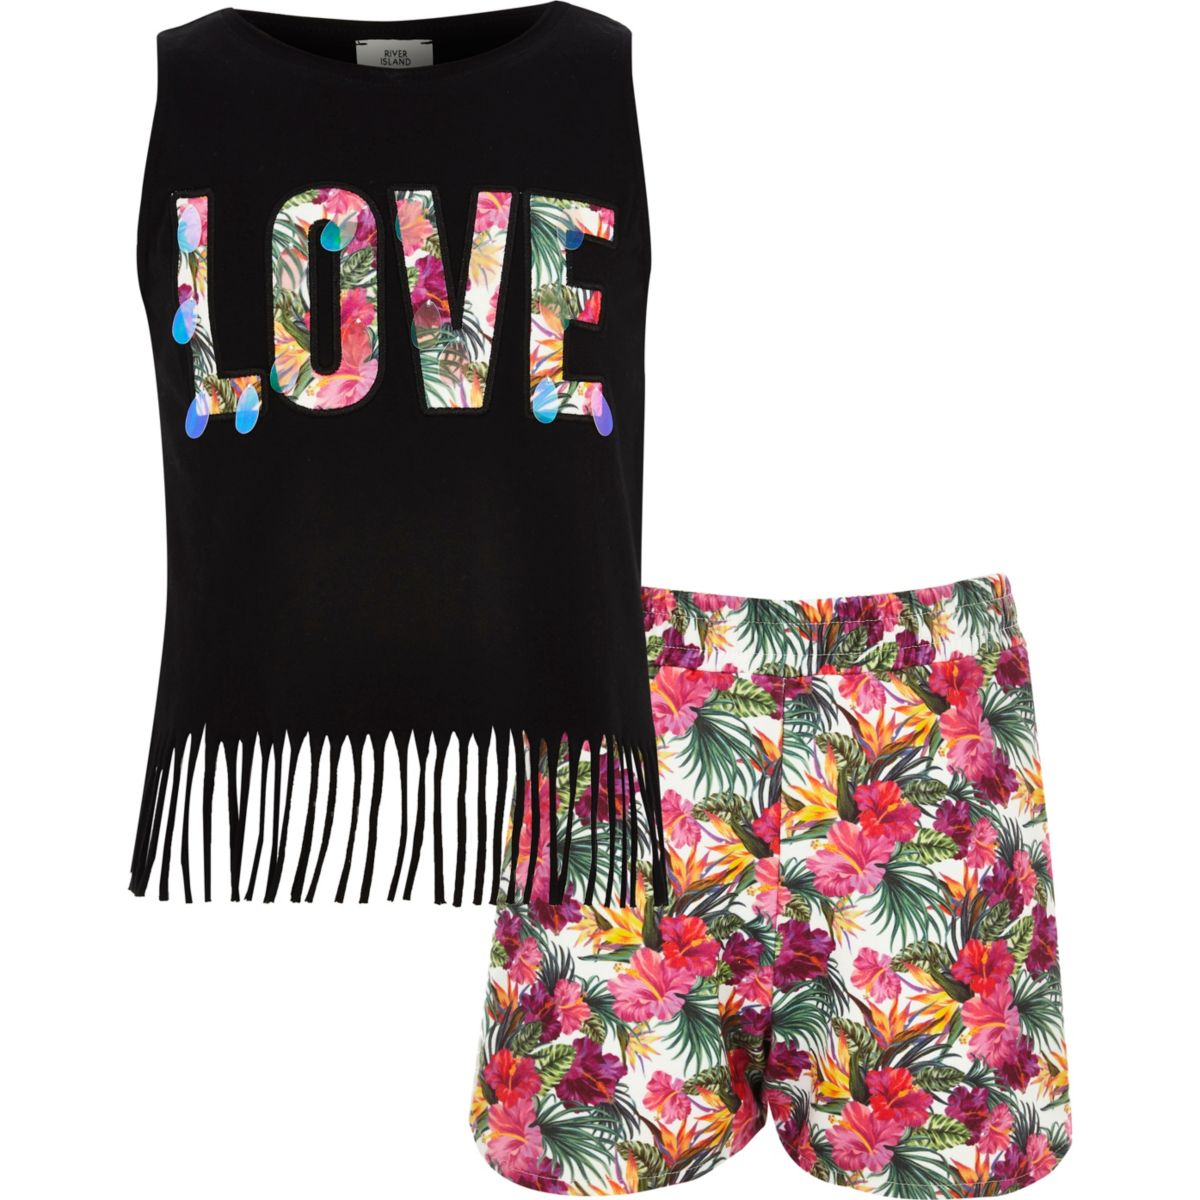 Girls black 'Love' vest and shorts outfit